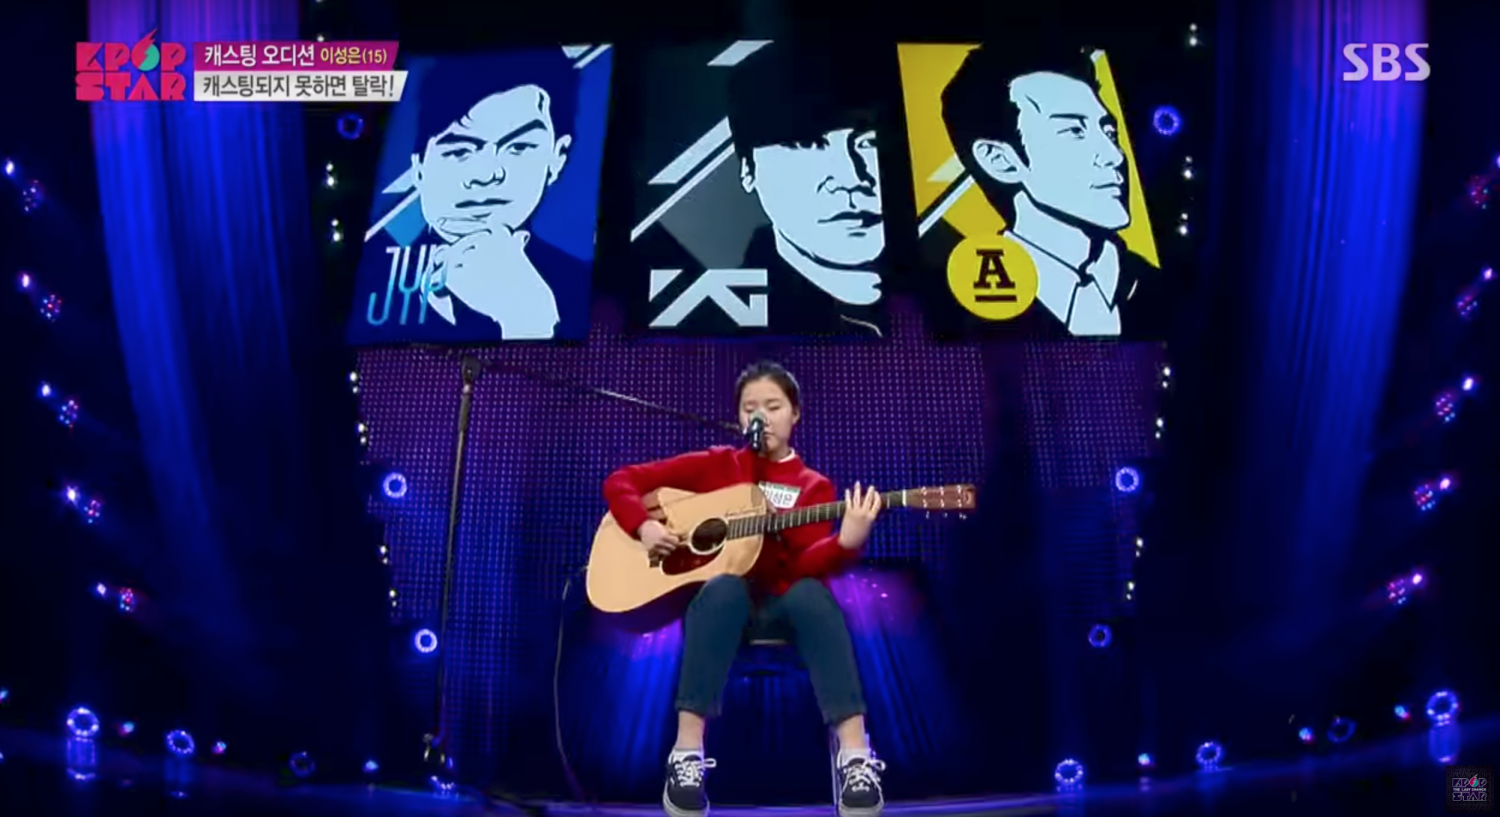 Sung+Lee+sings+%22Melon%22+at+the+KPOP+STAR+competition.